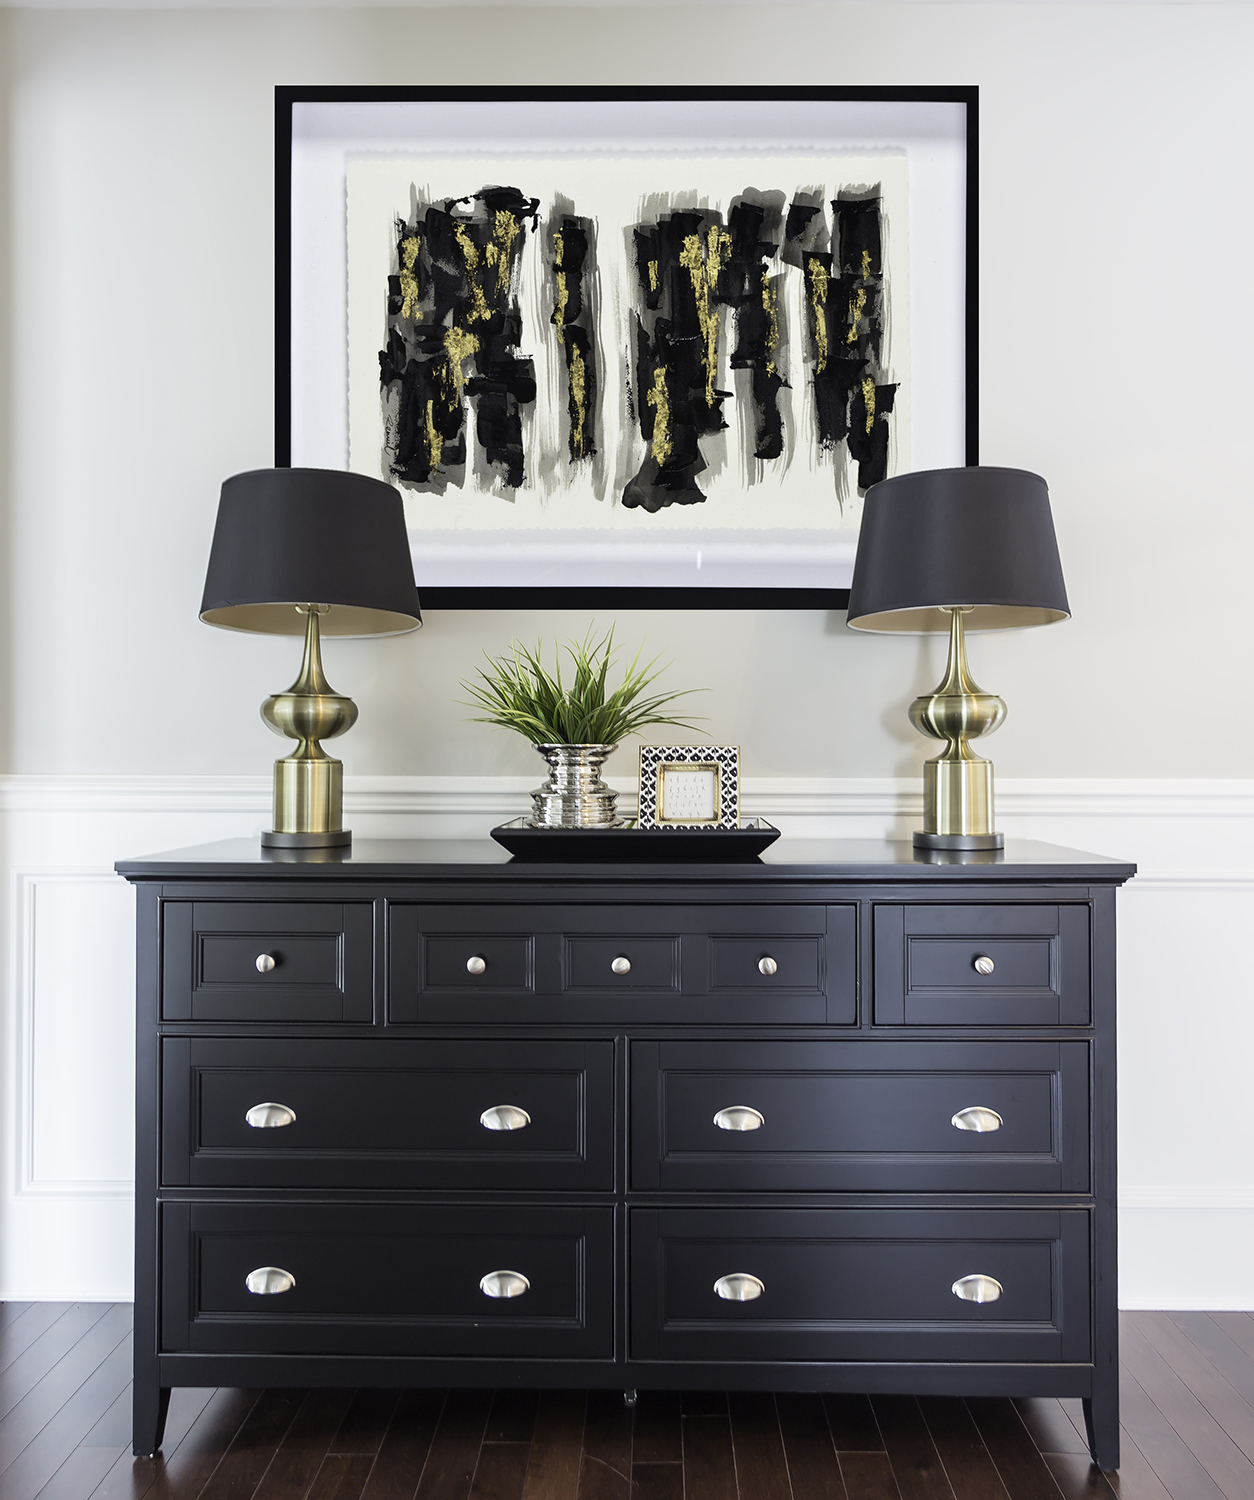 Foyer painted in Stonington Gray with striking black dresser and lamps.